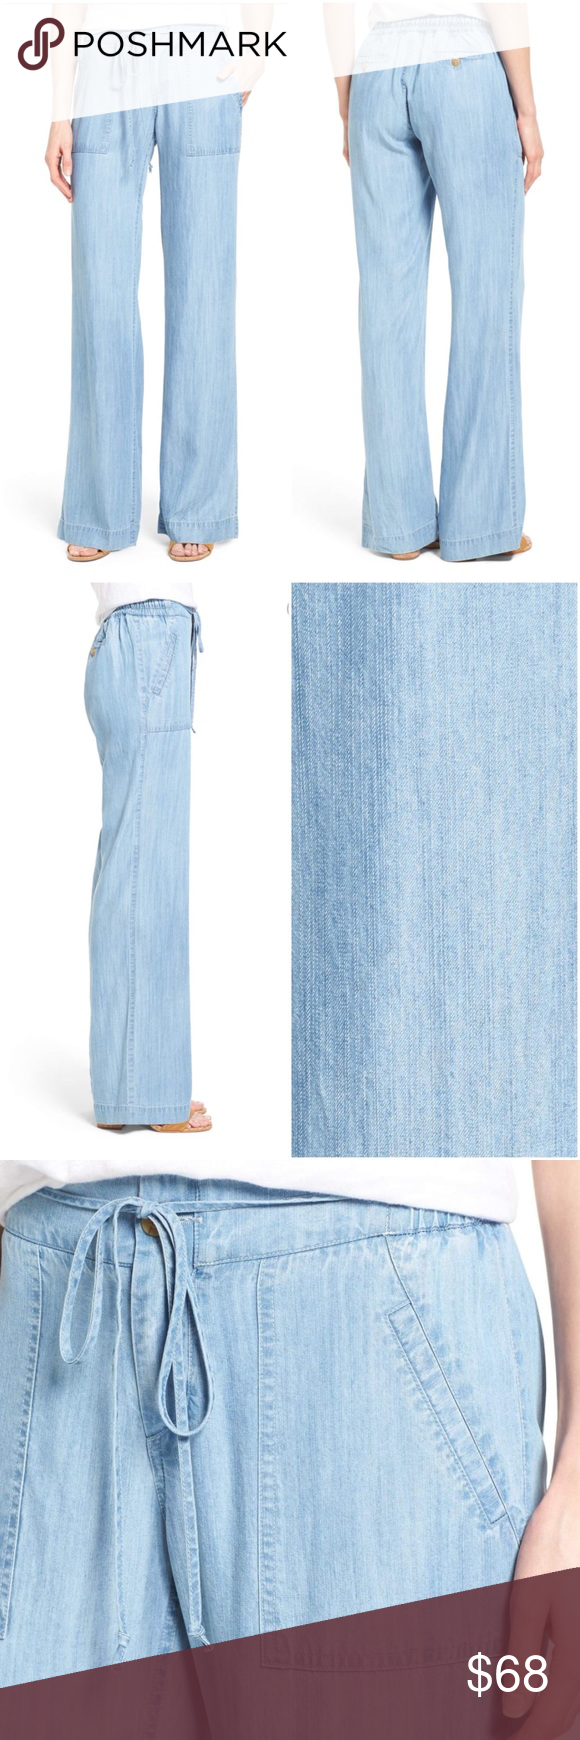 Kut From The Kloth Chambray Wide Leg Pants Lightweight Denim Wide Leg Pants Clothes Design